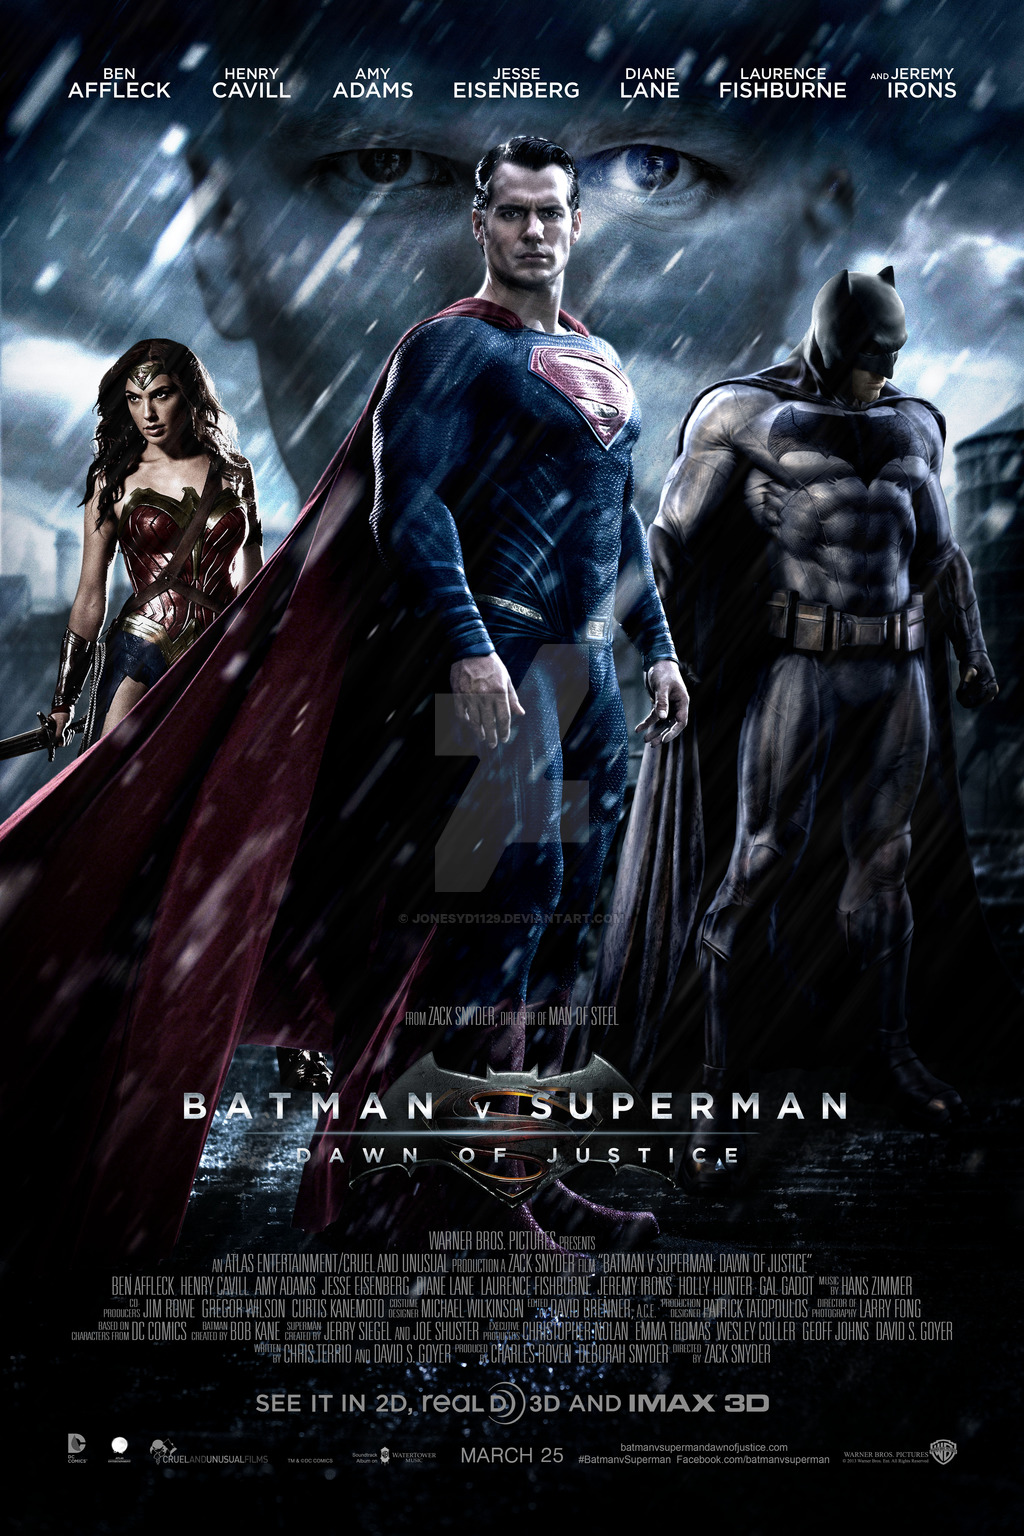 batman_v__superman__dawn_of_justice_poster_3_by_jonesyd1129-d8s0mww_1455901123